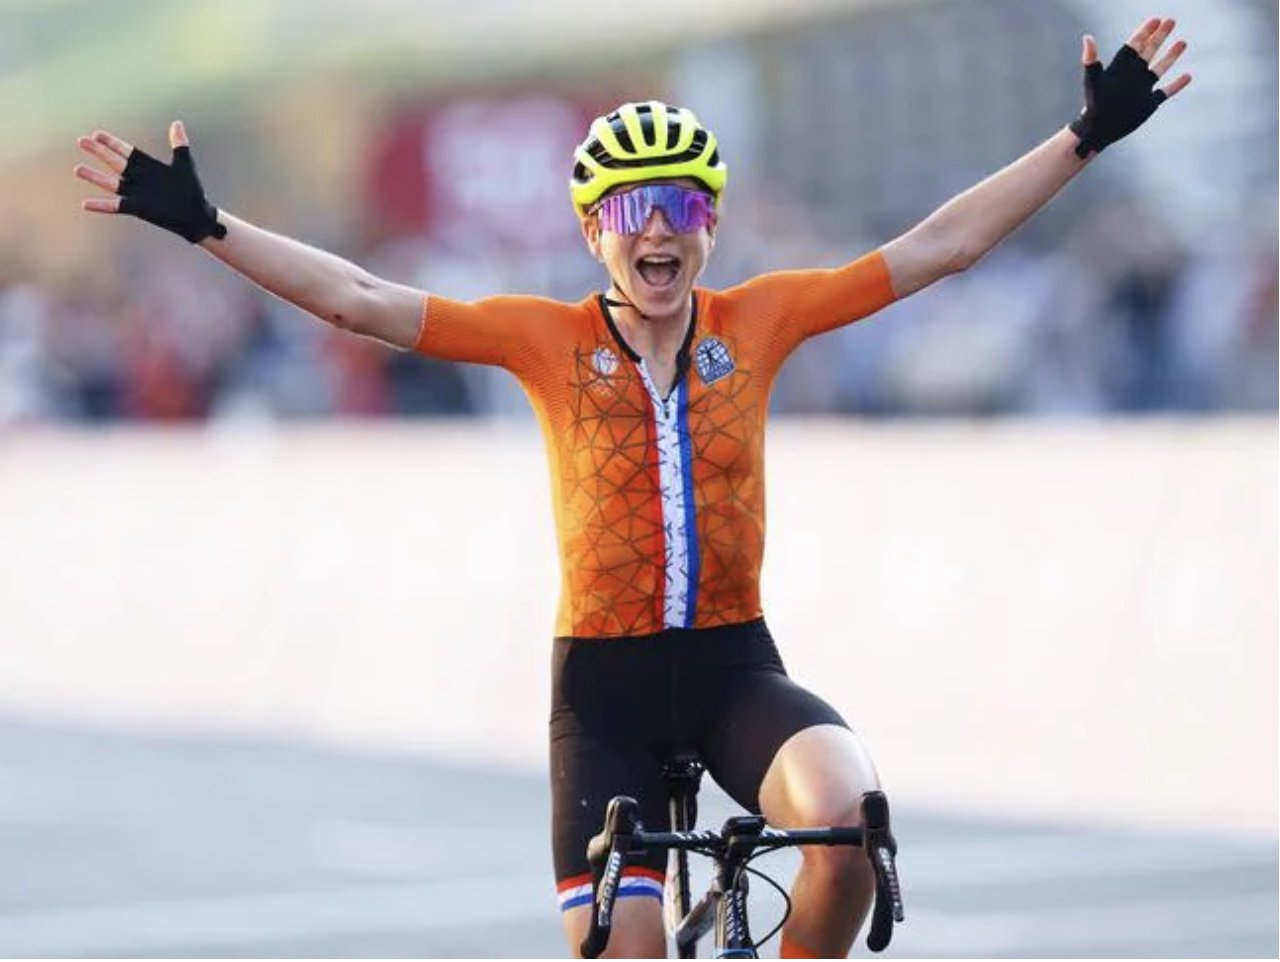 """Annemiek van Vleuten, a Dutch """"dishonored""""... a """"wrong"""" celebration of Olympic gold! Dutch Annemiek van Vleuten celebrated what she thought the road cycling gold medalist at the Tokyo Olympics before later finding out she was a somewhat embarrassing runner-up: the 'lucky bike' that was a gold contender at the 2016 Games before being hit An accident at the time prevented her from completing the race"""